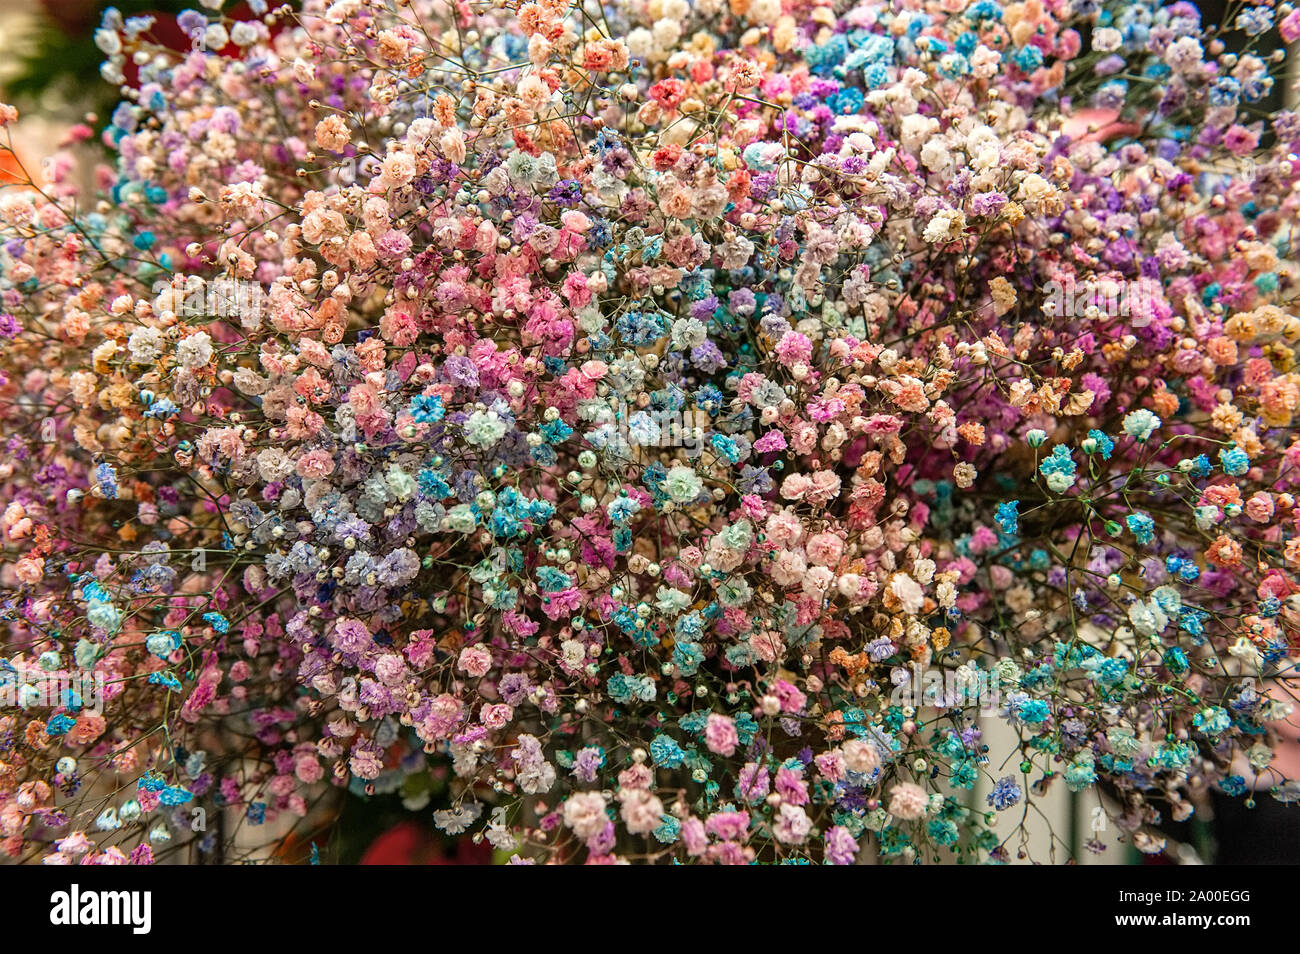 Floral Beautiful Colored Background Small Colorful Inflorescences Of Small Flowers Flowers Baby S Breath Selective Focus Stock Photo Alamy